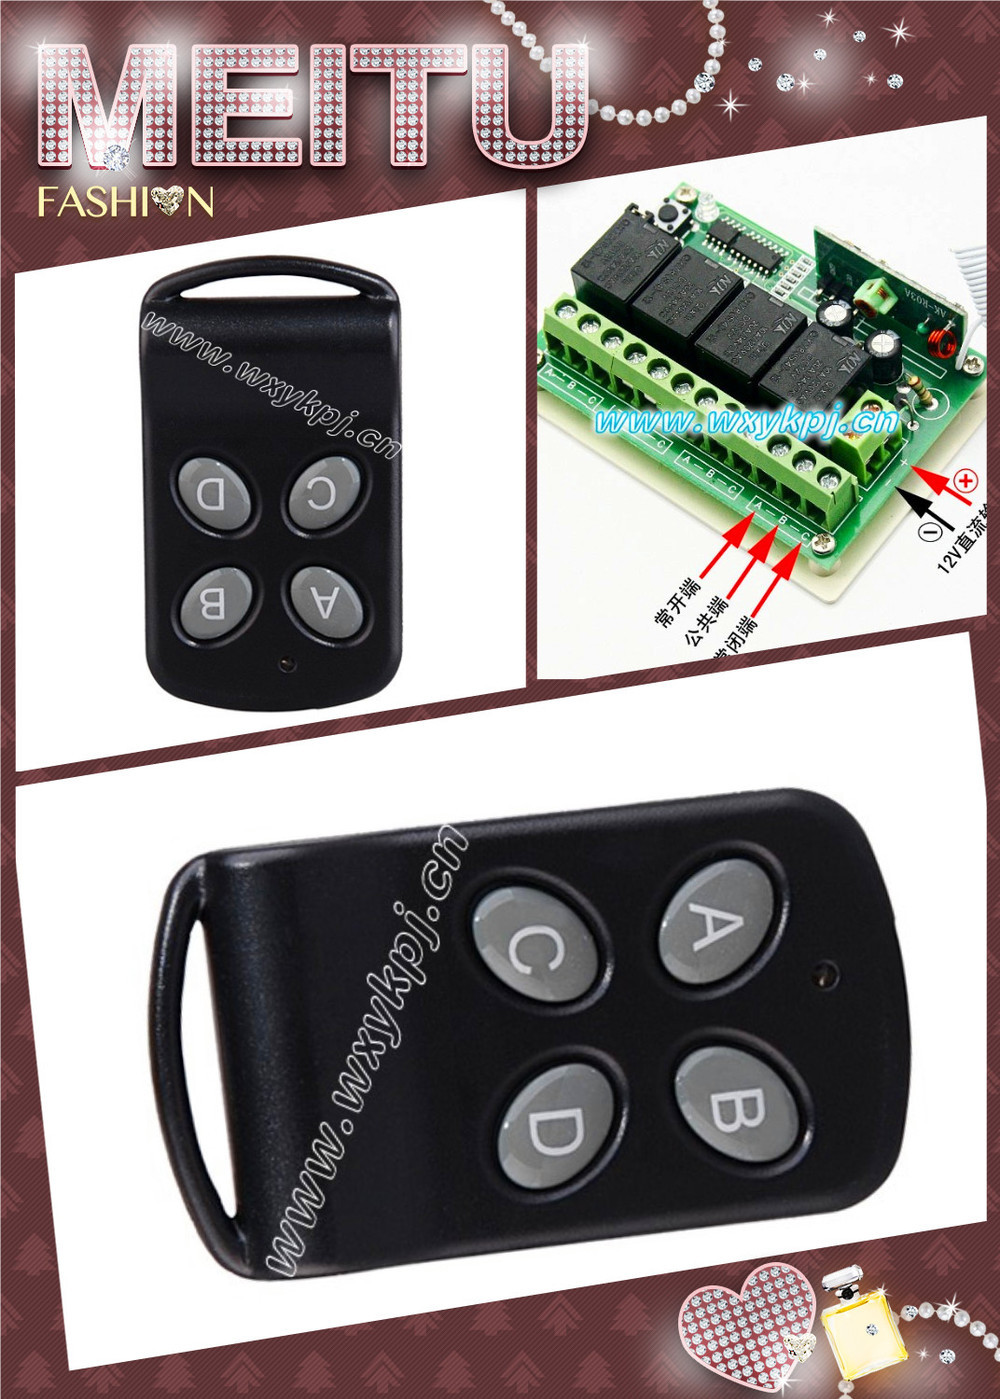 NEW ! DC12V 4CH Wireless Remote Control Switch System smart home controller Receiver radio receiverl